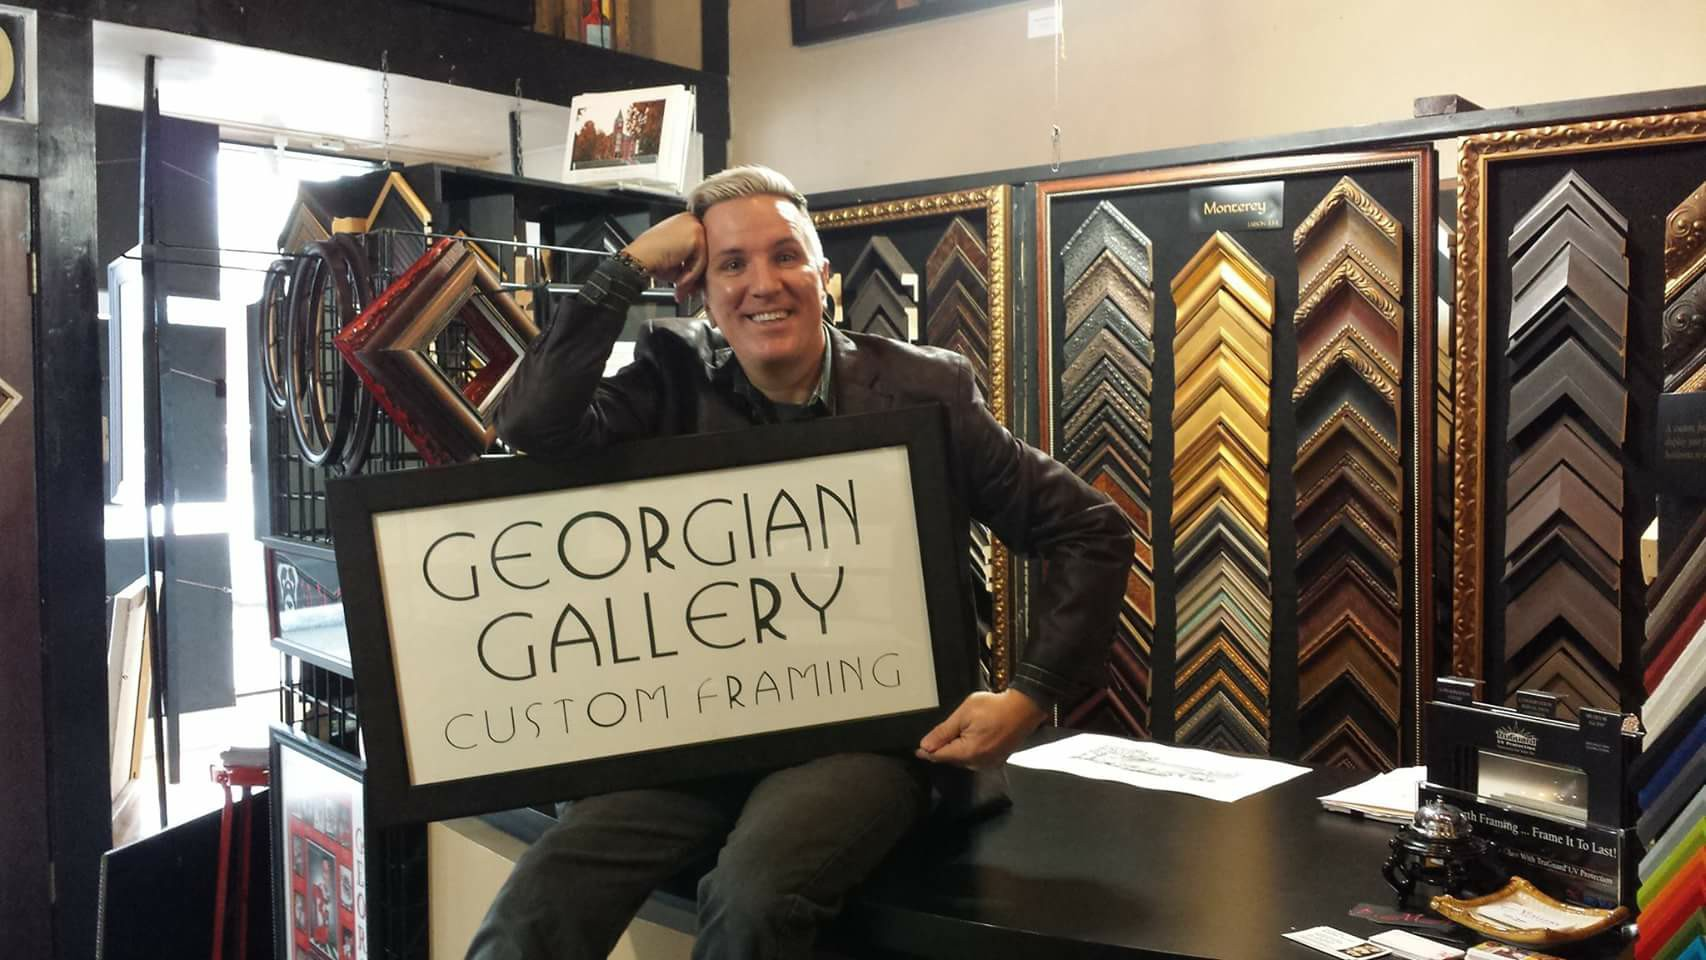 Georgian Gallery Custom Framing